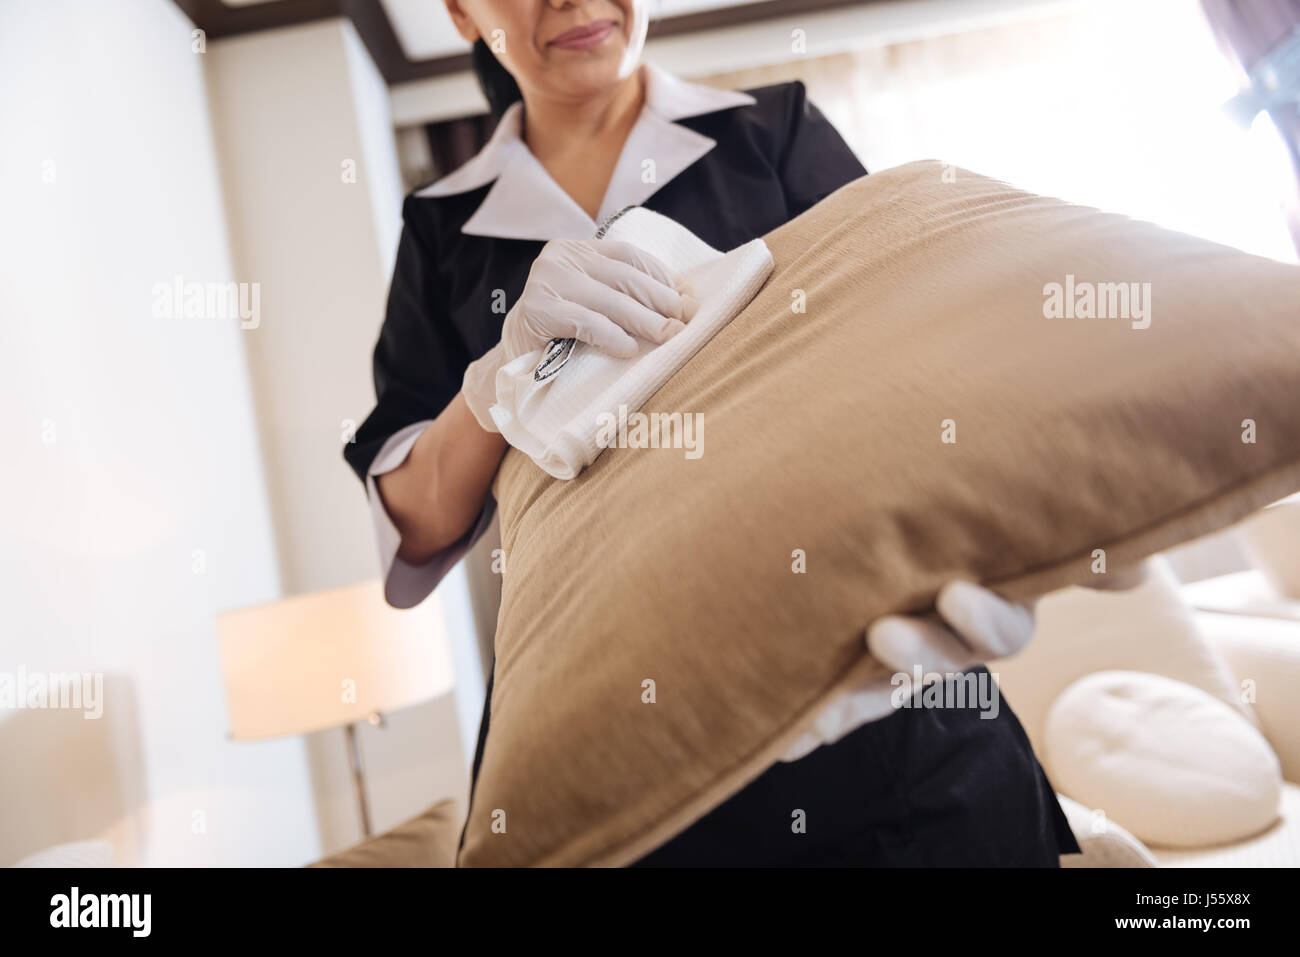 Close up of a sofa cushion being cleaned - Stock Image